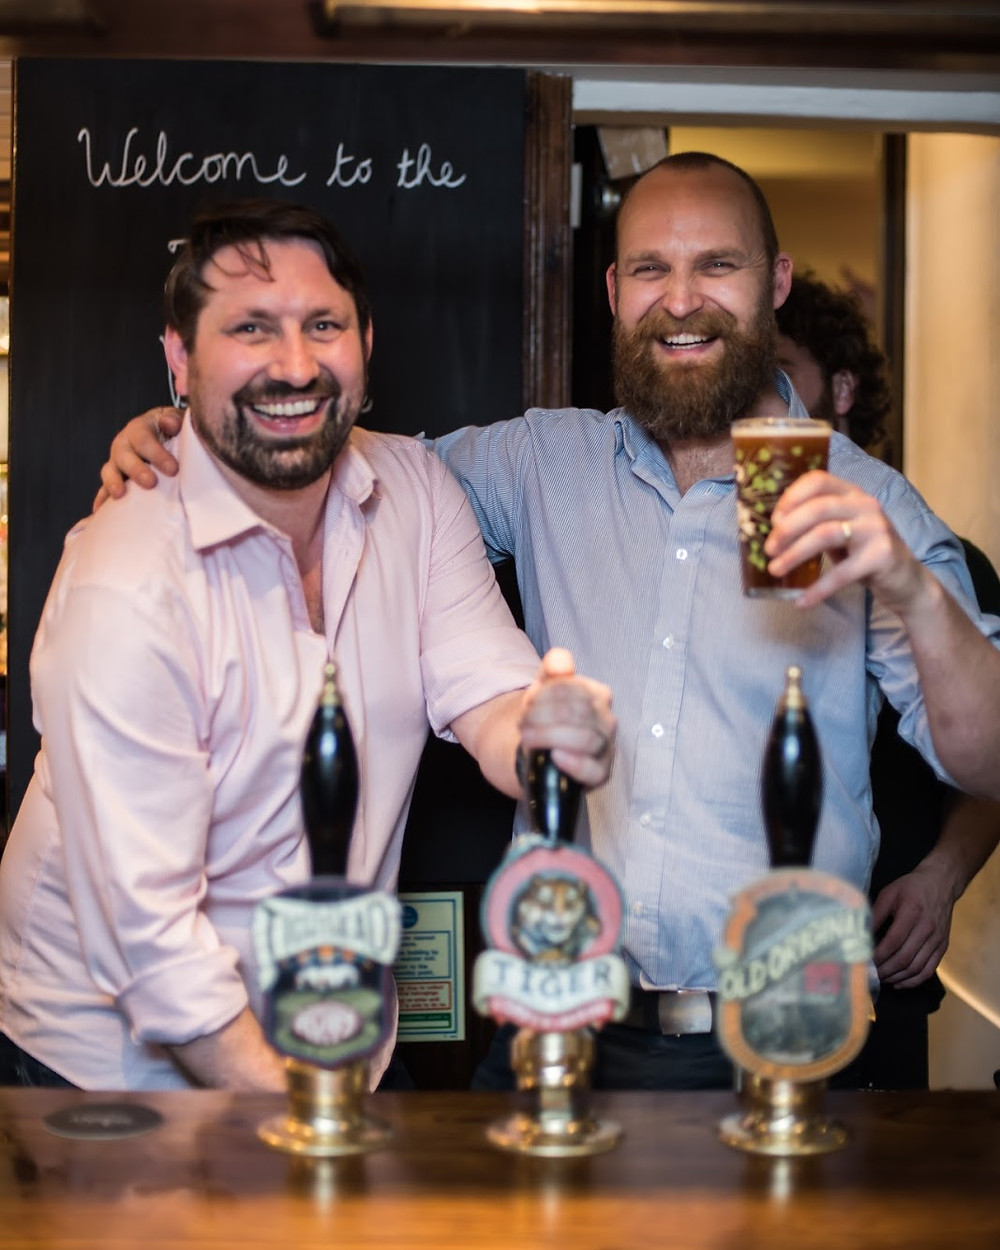 Two men in shirts smiling and pulling pints in a pub